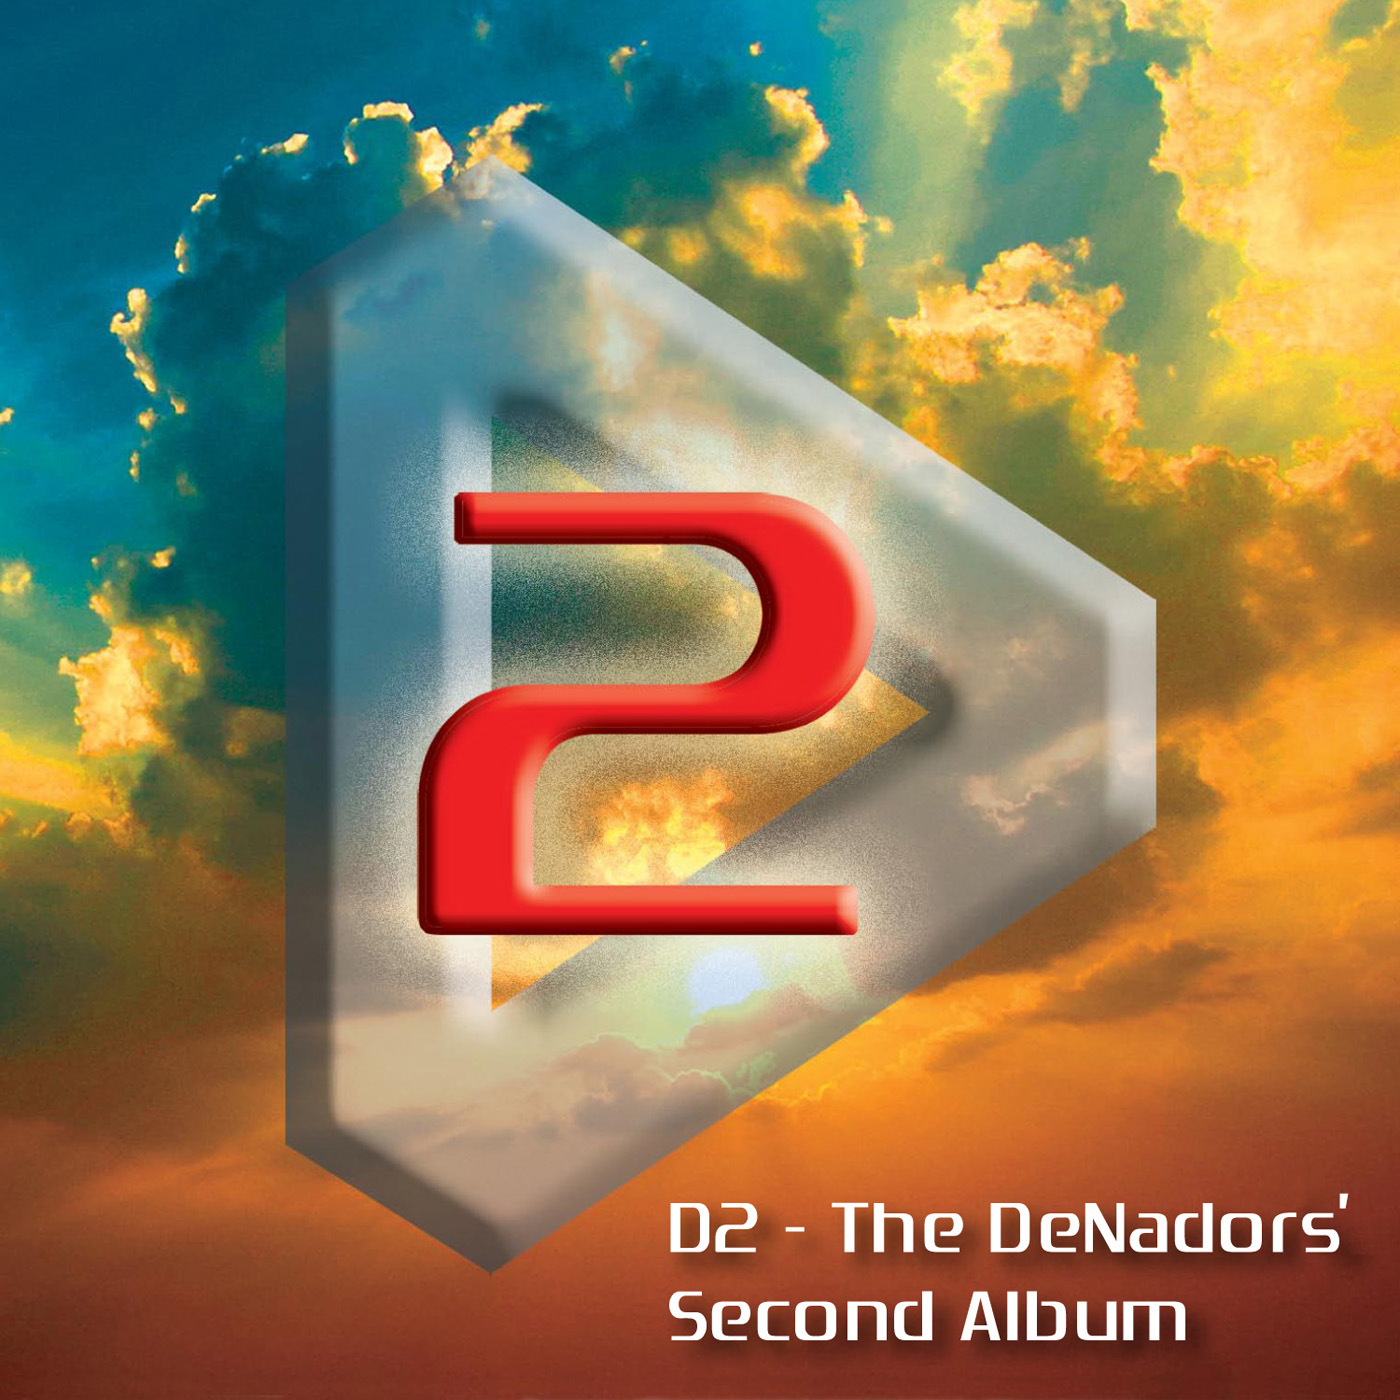 D2 - The DeNadors' 2nd Album